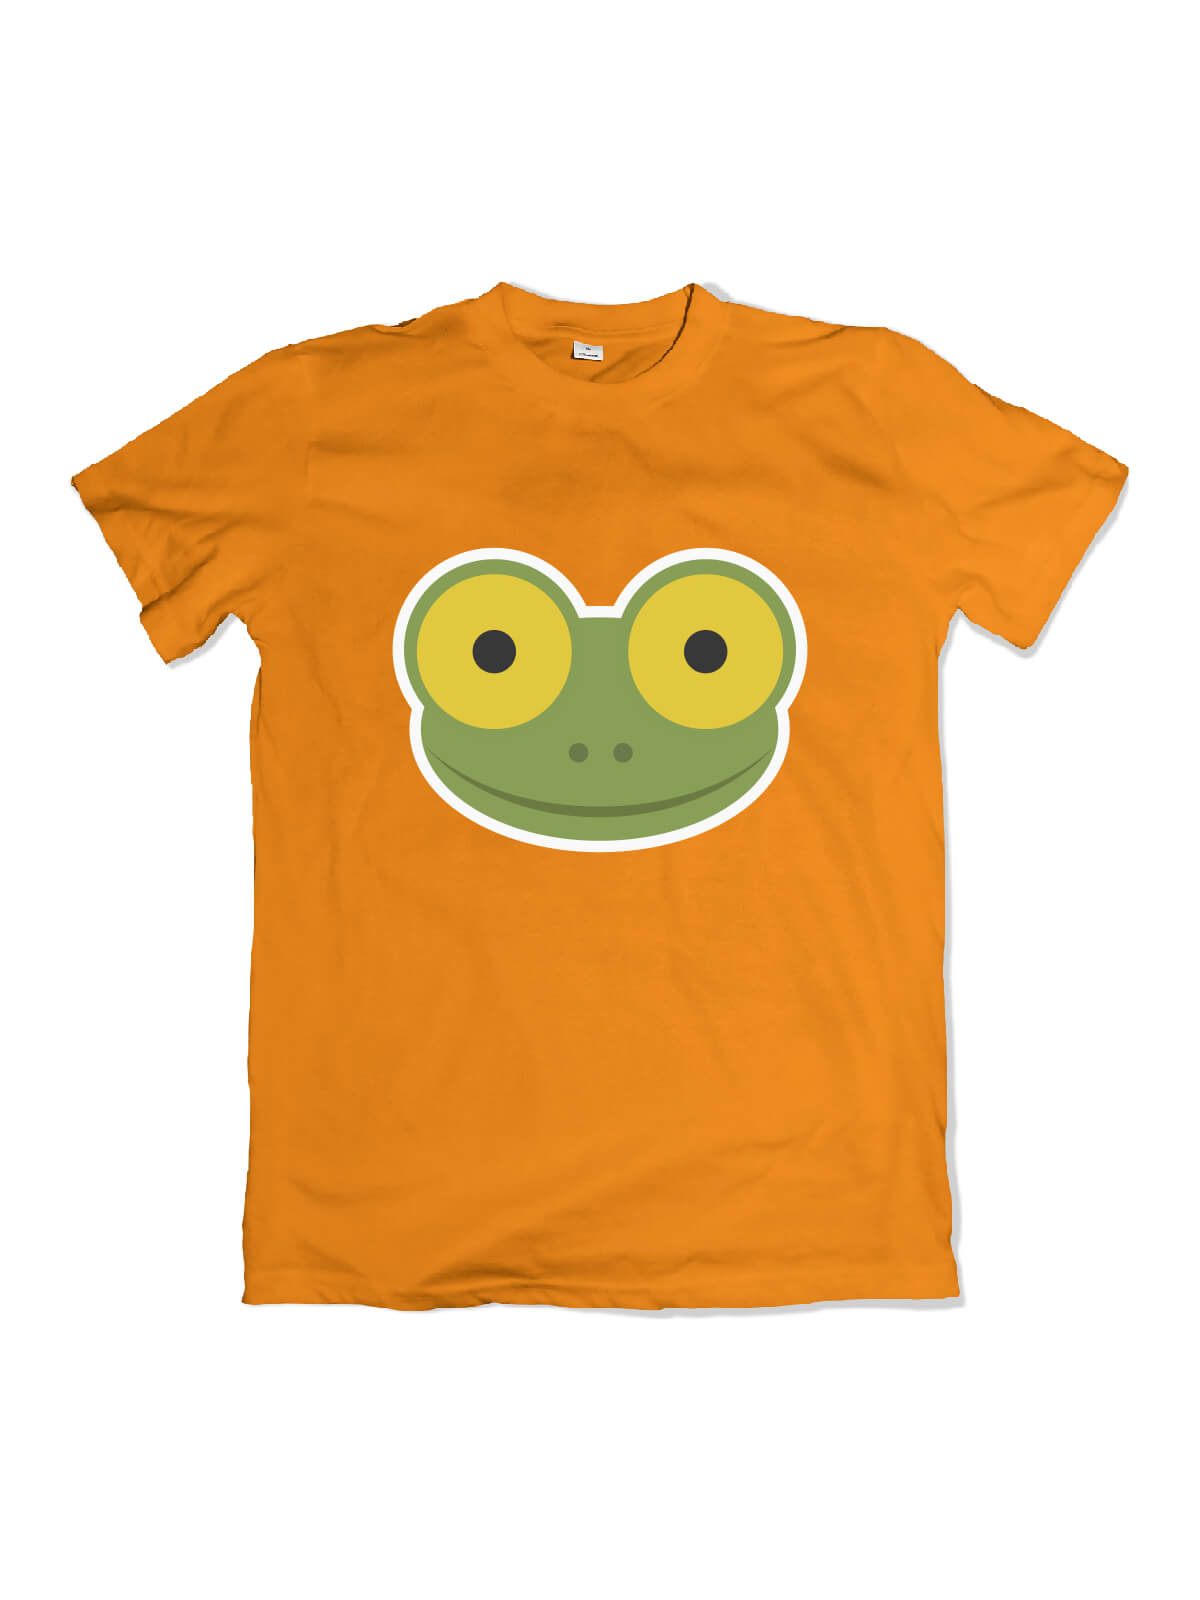 orange t-shirt with Mike the frog face